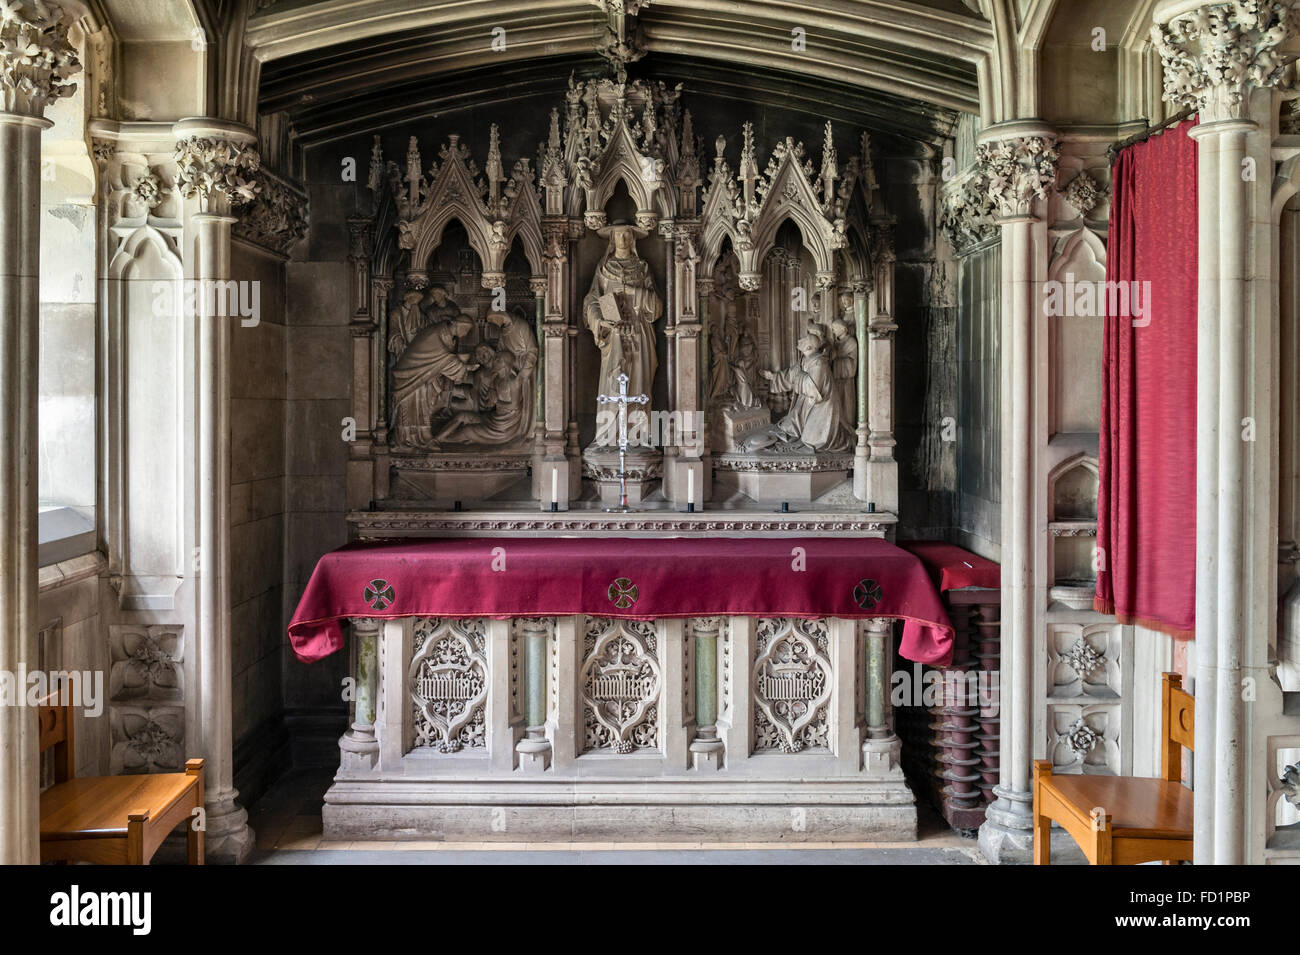 a now redundant Catholic seminary. Chapel of St Charles Borromeo - Stock Image